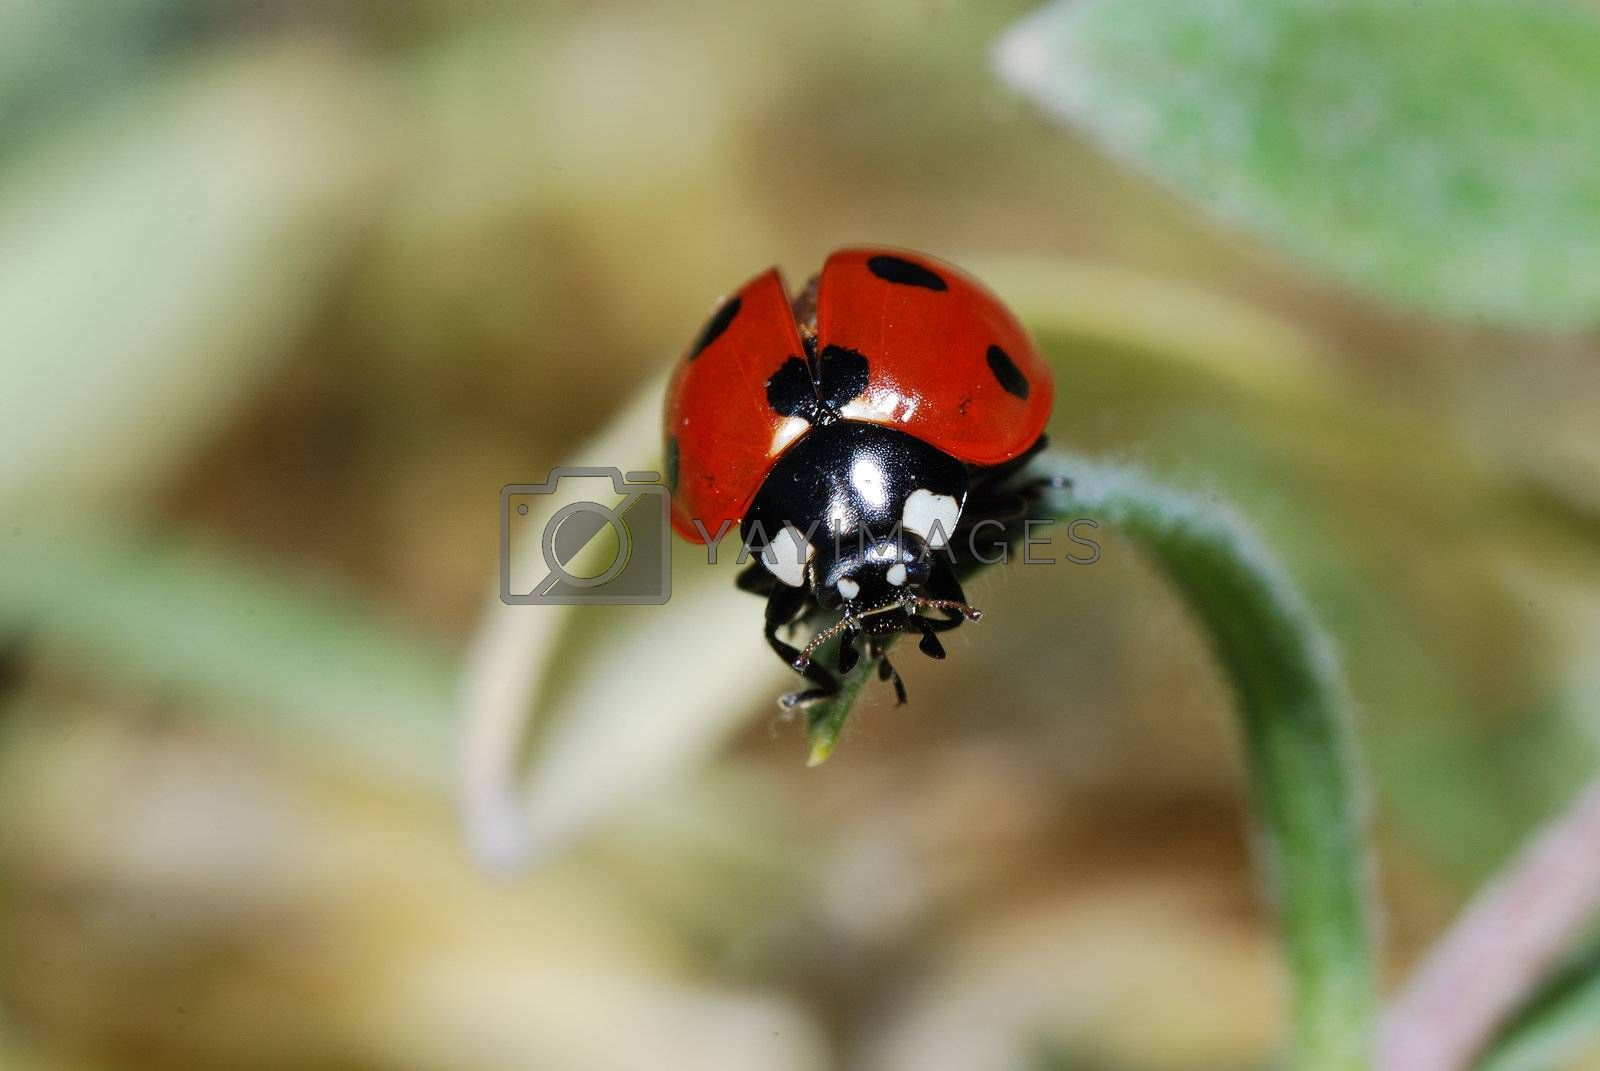 small black ladybug red just before takeoff on a leaf in the spring